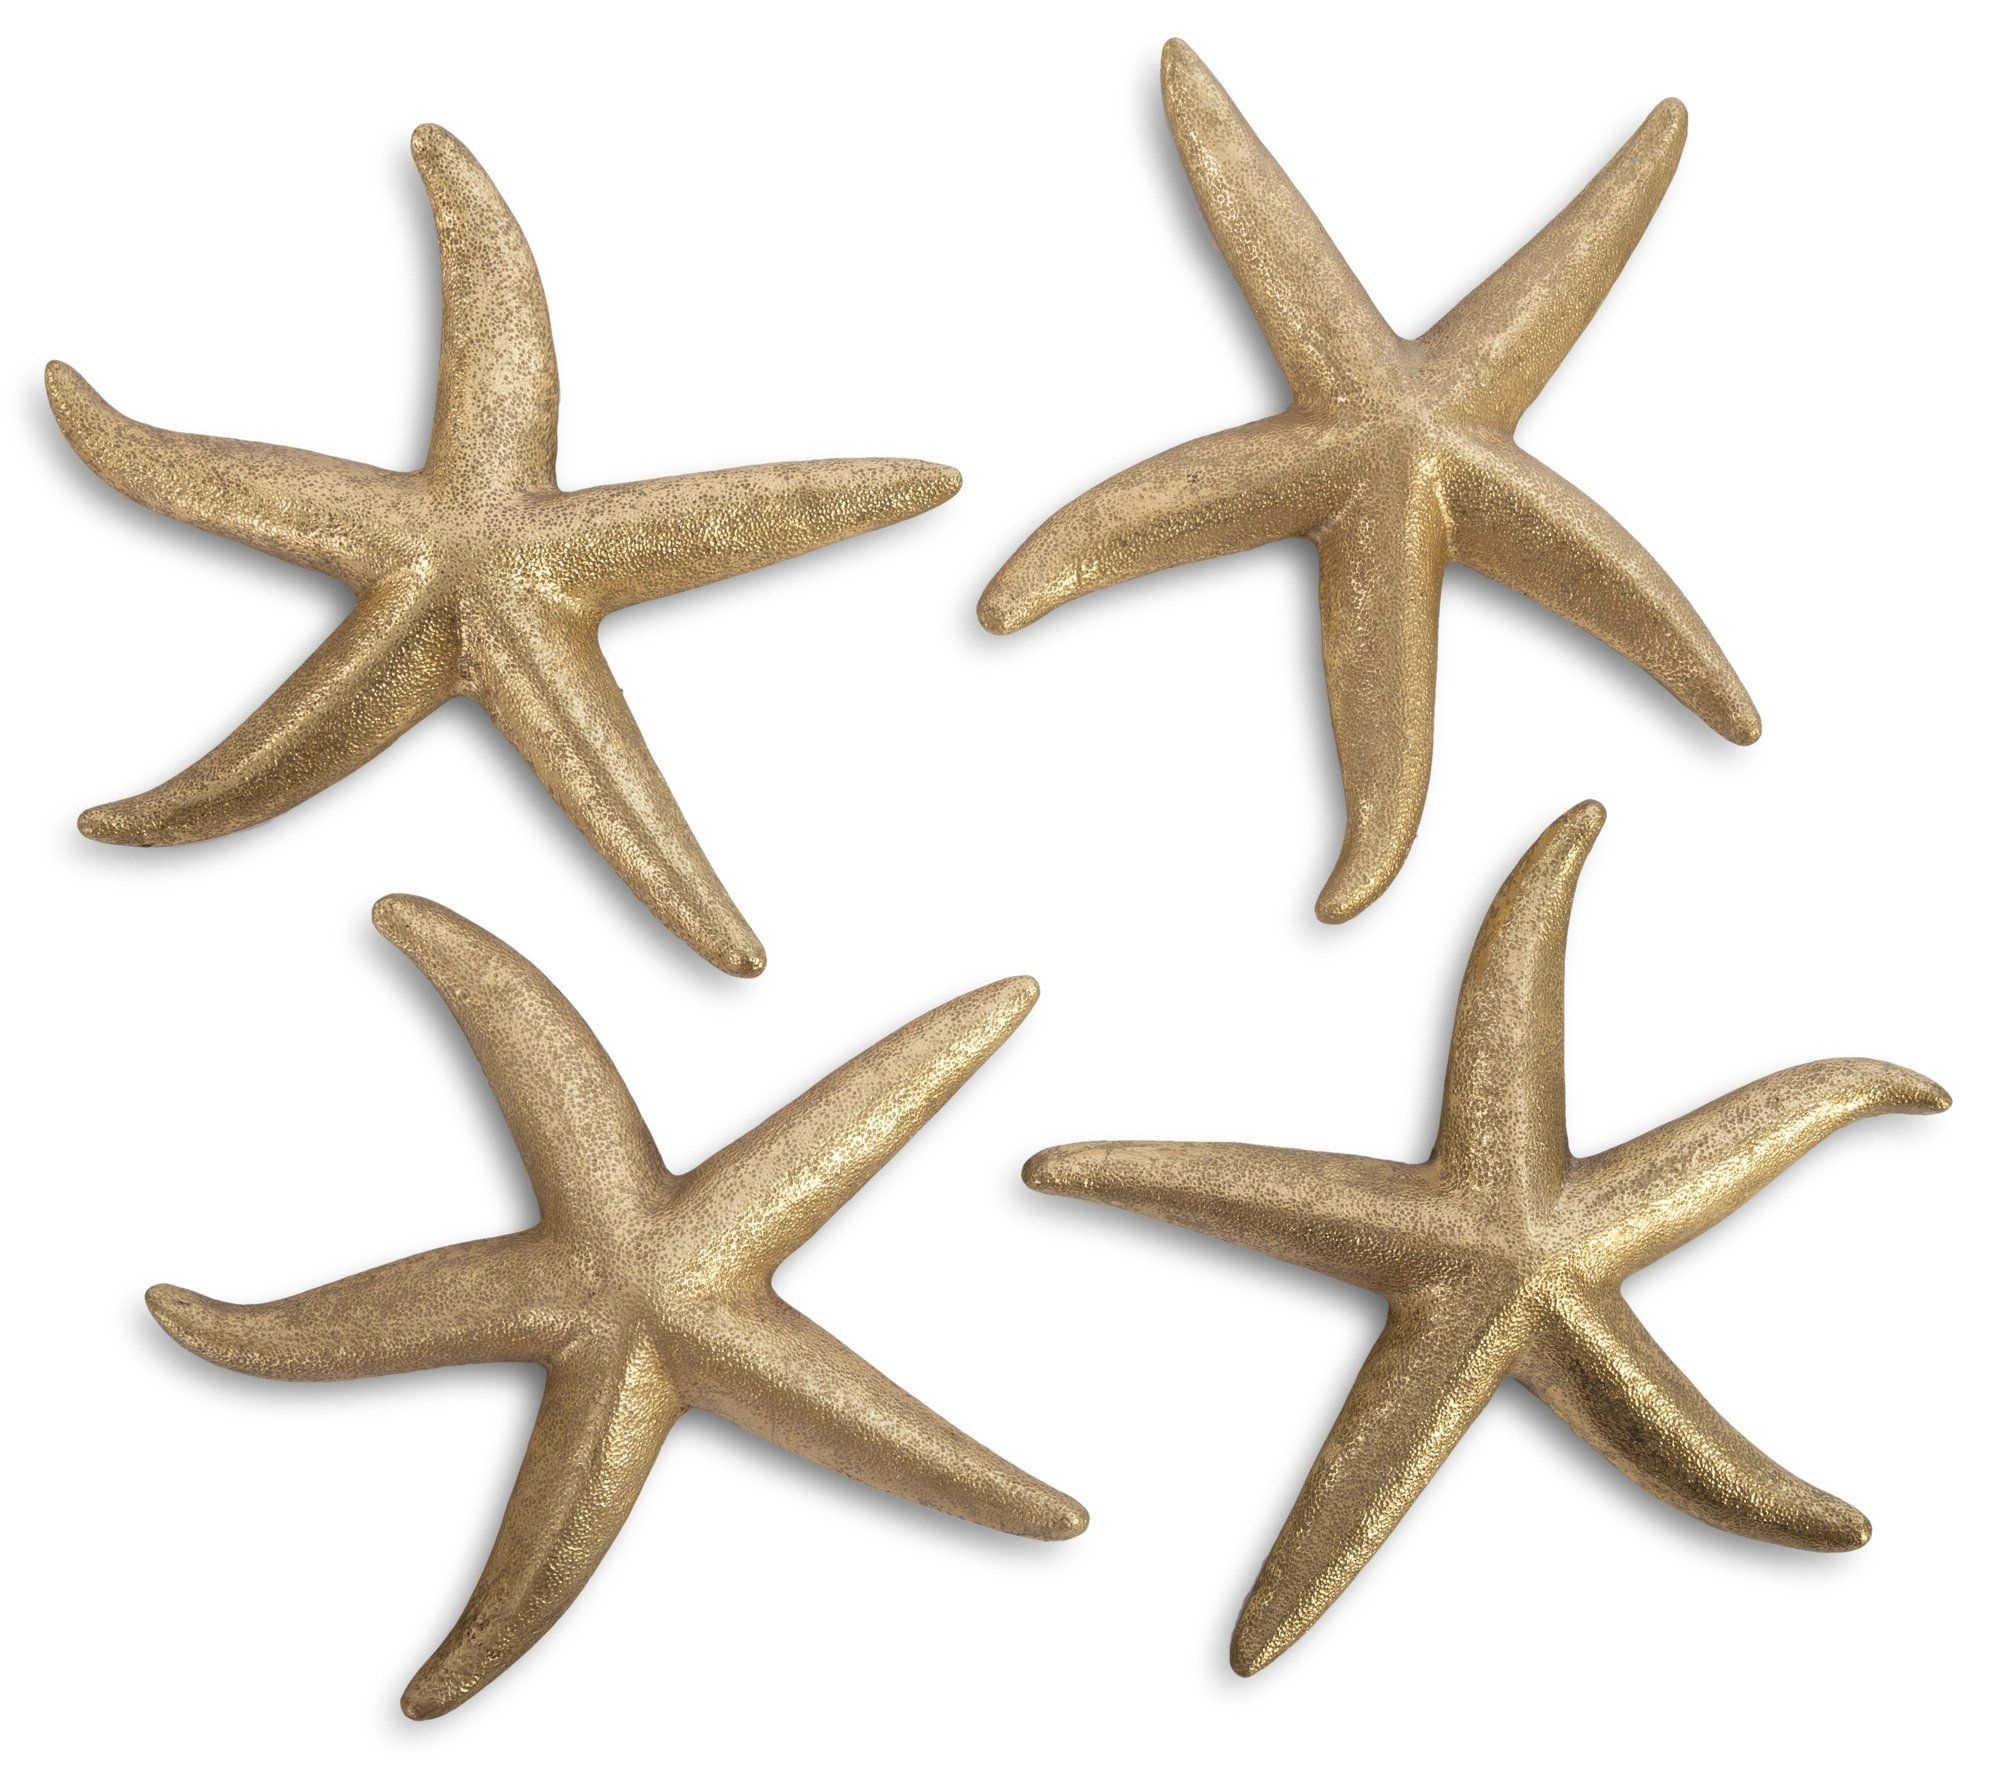 Fashionable Yelton 3 Piece Starfish Wall Decor Sets Inside 4 Piece Starfish Leaf Wall Decor Set (View 13 of 20)